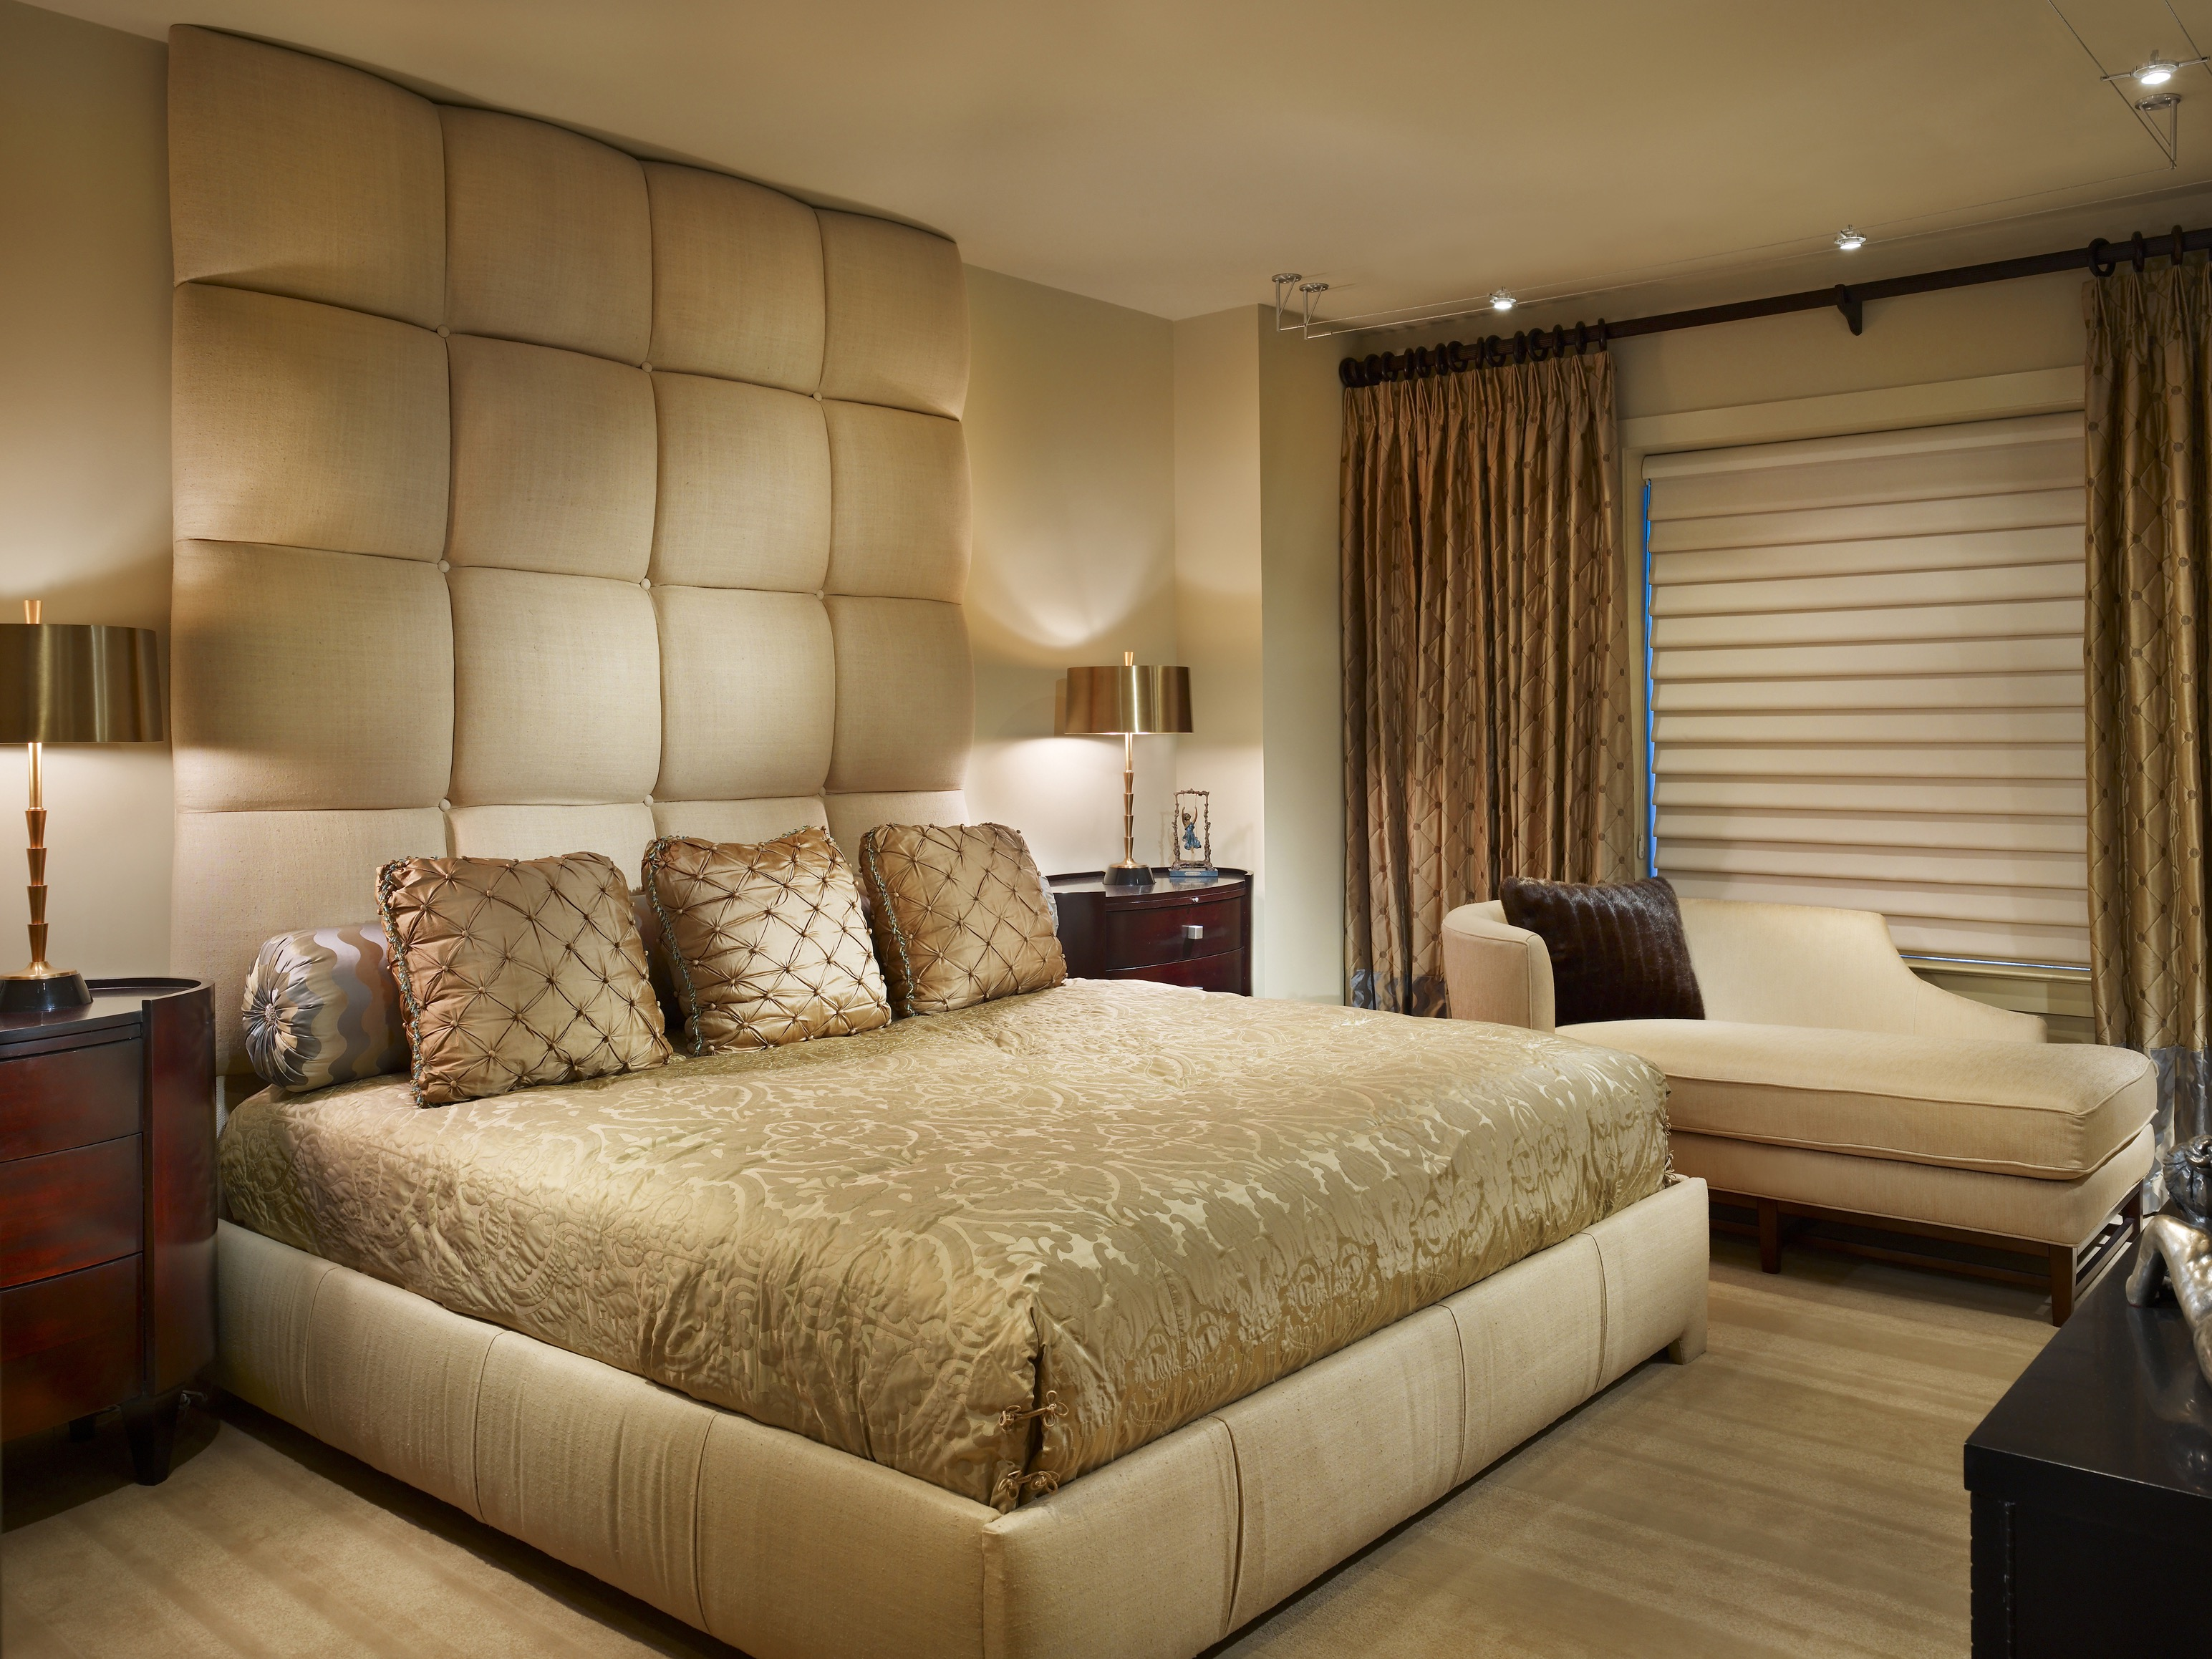 Sophisticated Glamour Bedroom In Gold Paint Color (Image 18 of 22)